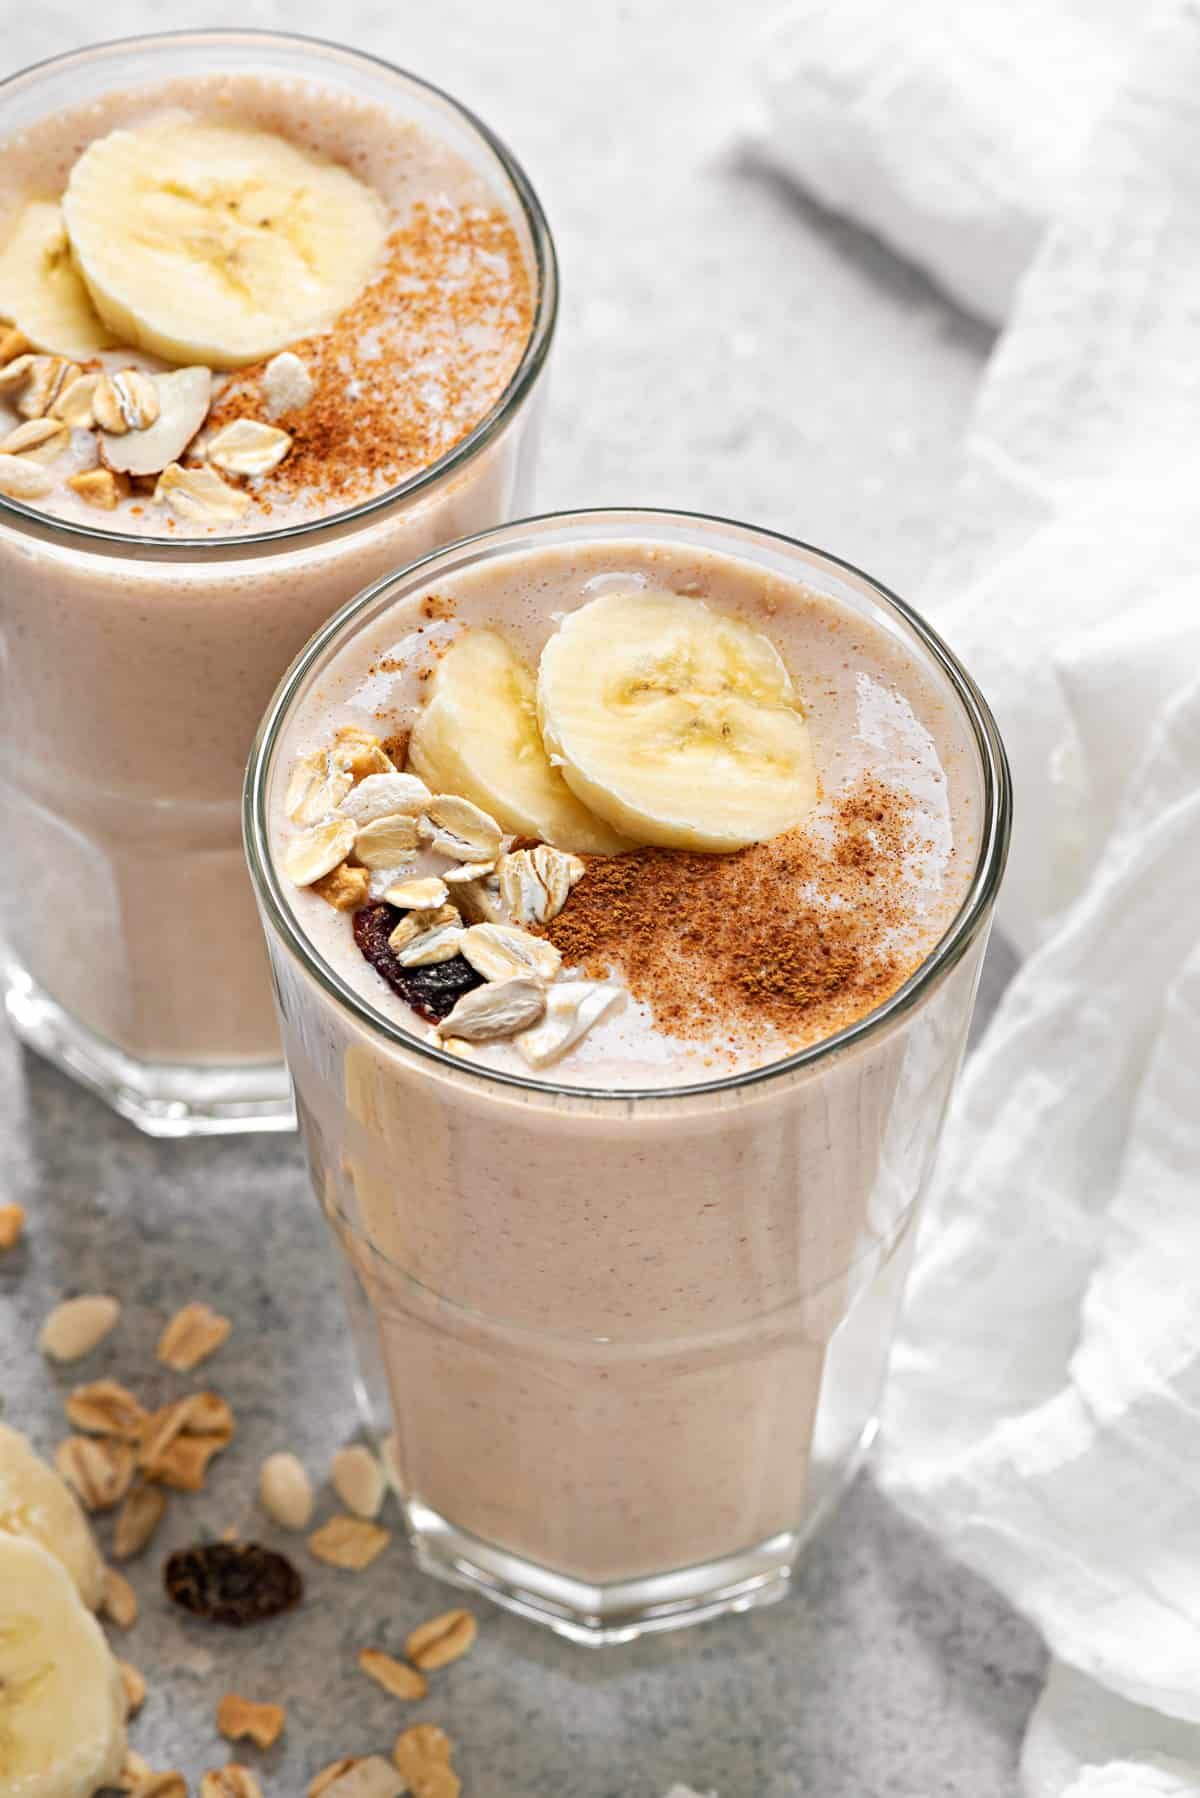 healthy banana breakfast smoothies topped with sliced banana, muesli and dusted with cinnamon